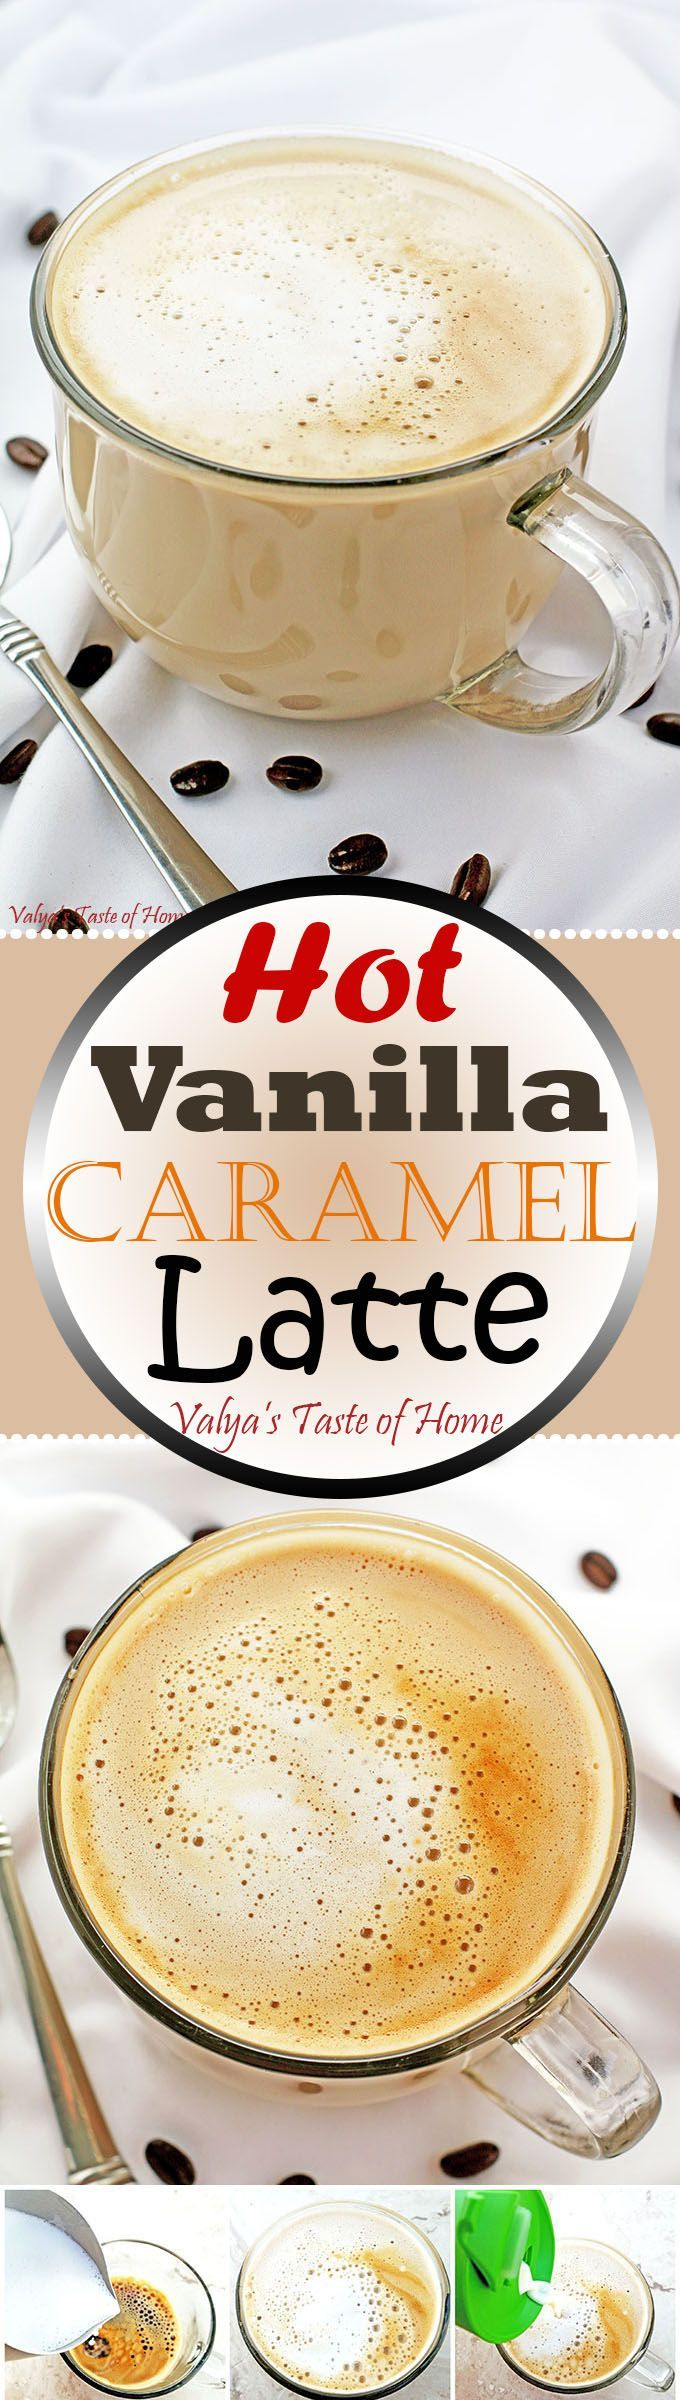 I've been asked many times if I have a good coffee recipe. Yes, I do! This is the best tasting latte ever! Better than Starbucks! And very similar to Wake Up Call coffee shop. At least that's what my kids say… But seriously, with a variable of where you get the coffee from, this latte is truly a great tasting drink. #makecoffee